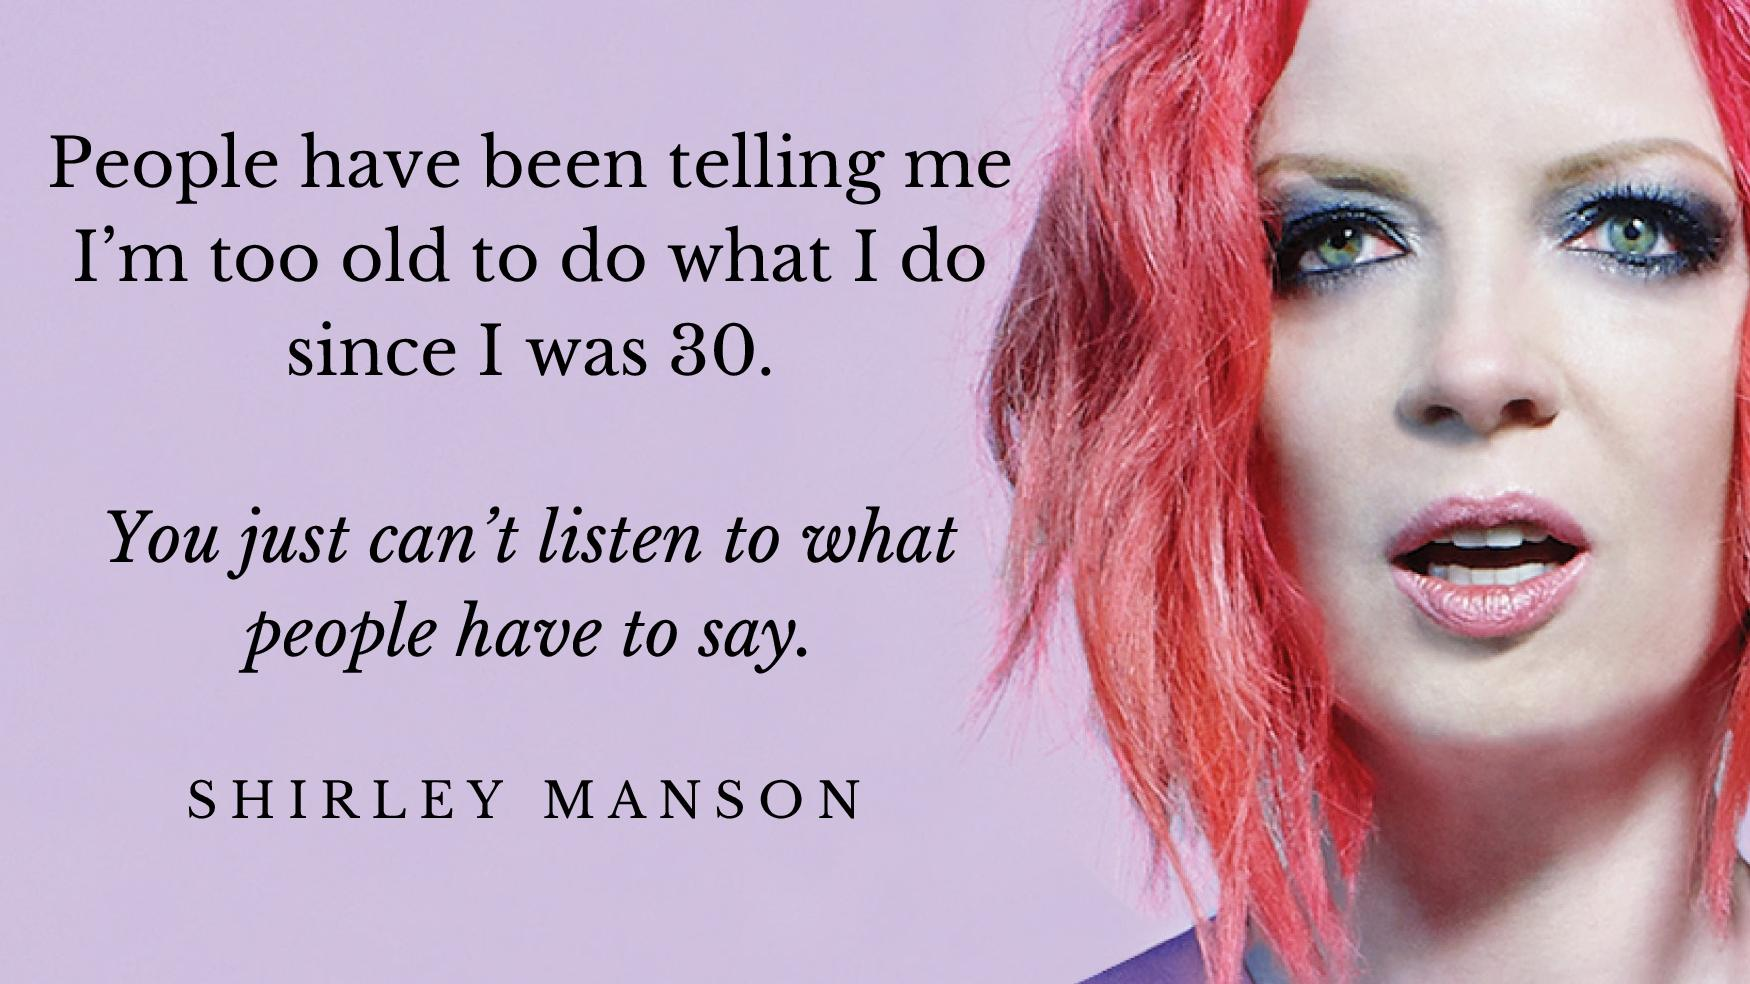 shirley manson quote